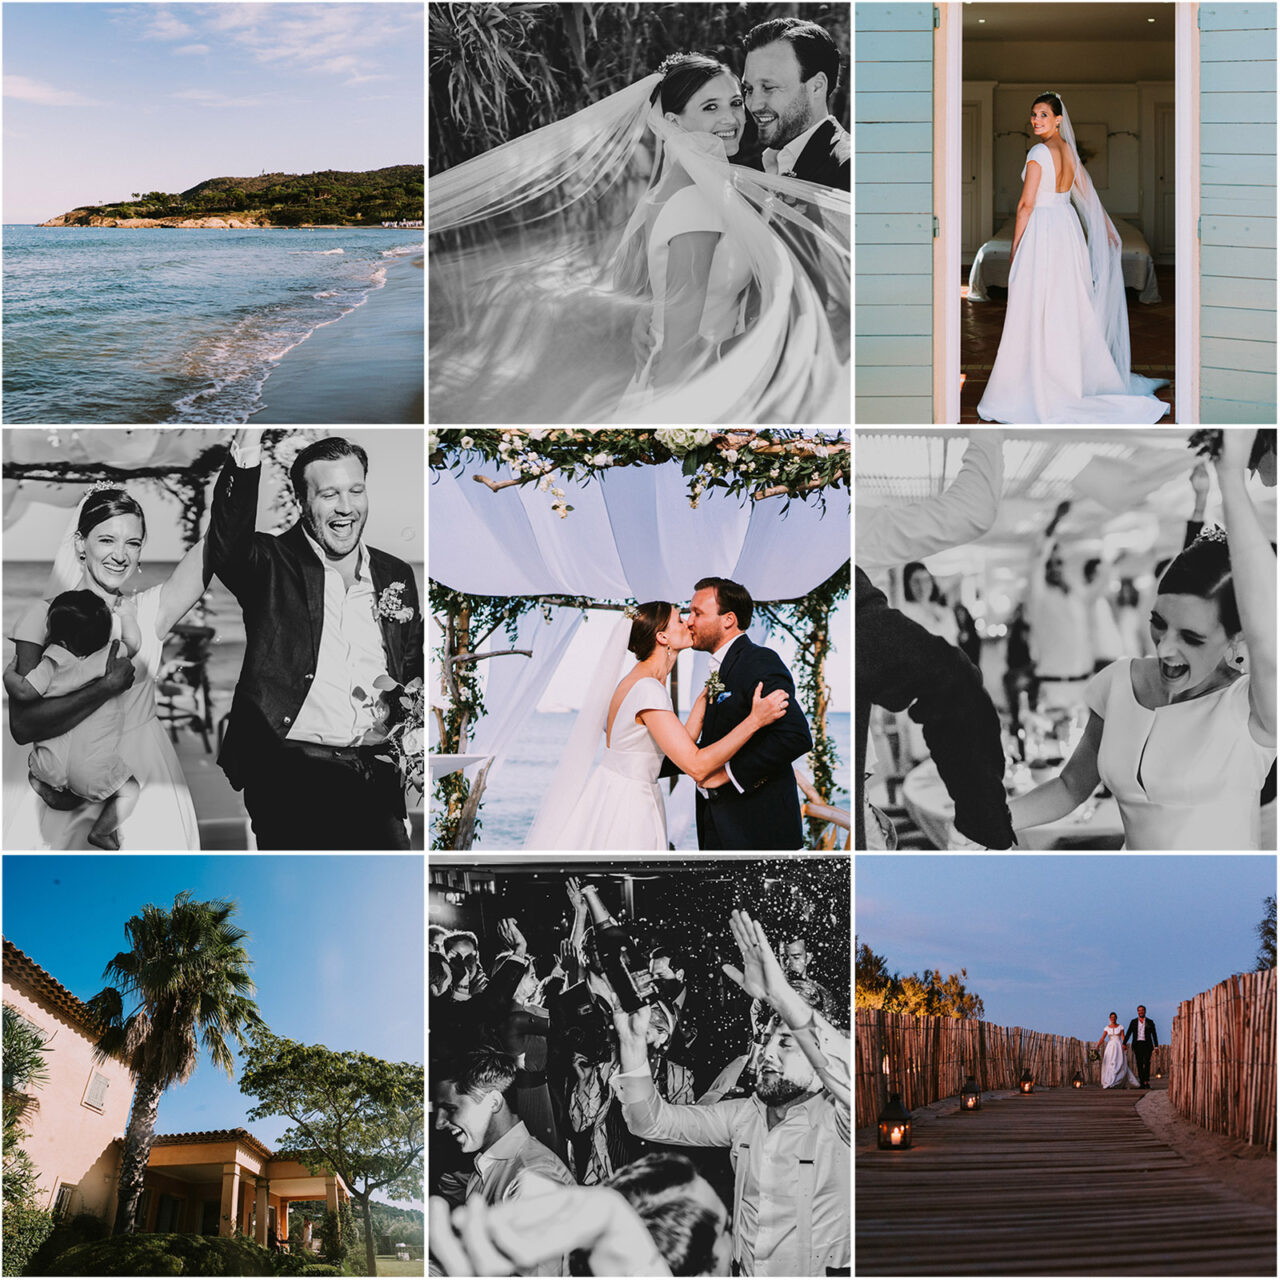 Wedding in the South of France: Sascha & Philip